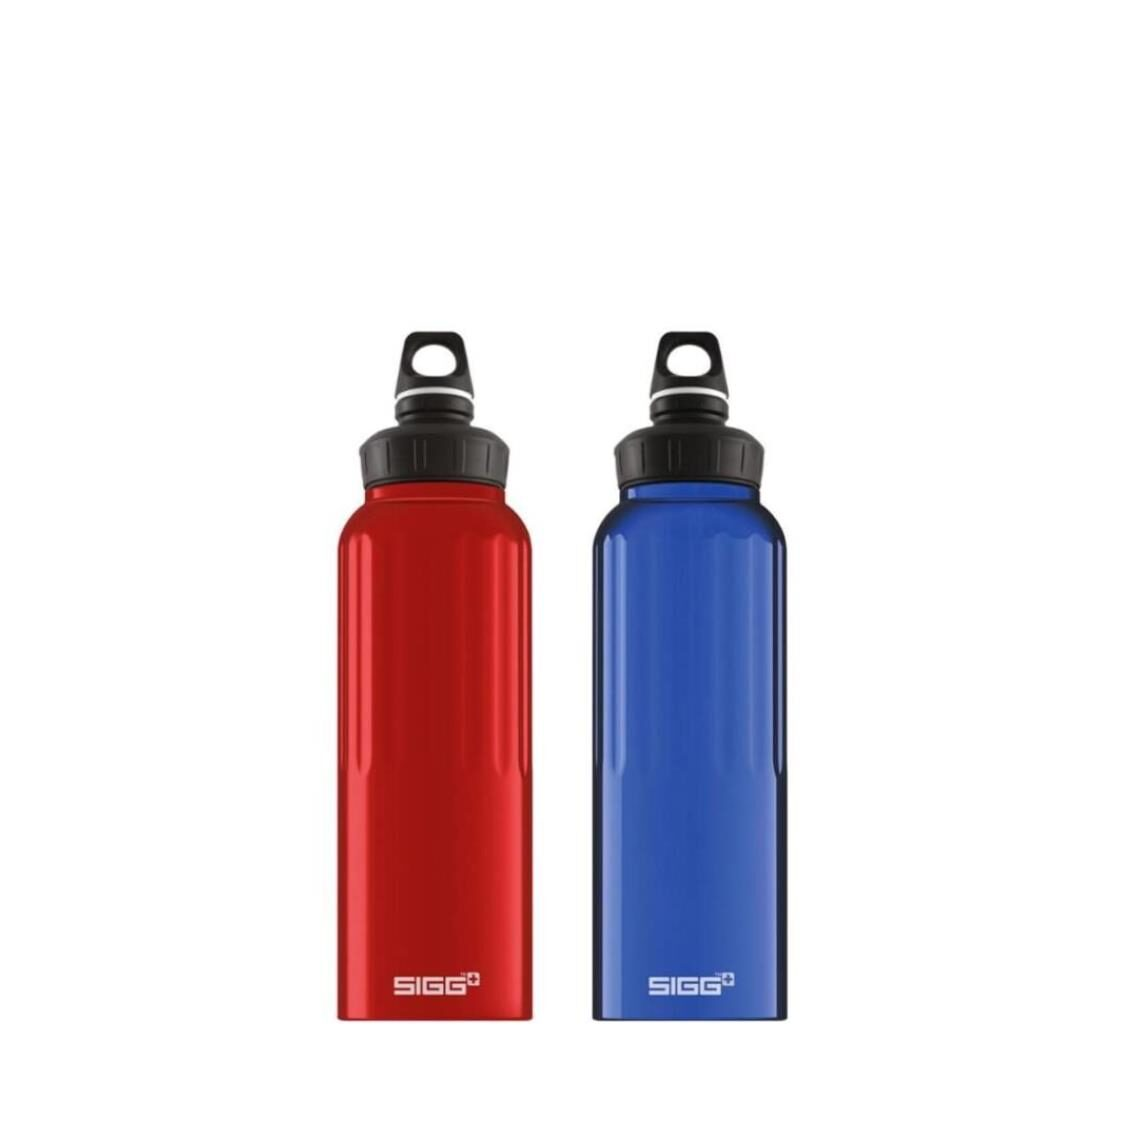 Sigg 2-pc Set 15L Traveller Wide Mouth Water Bottle - RedBlue 852600852610